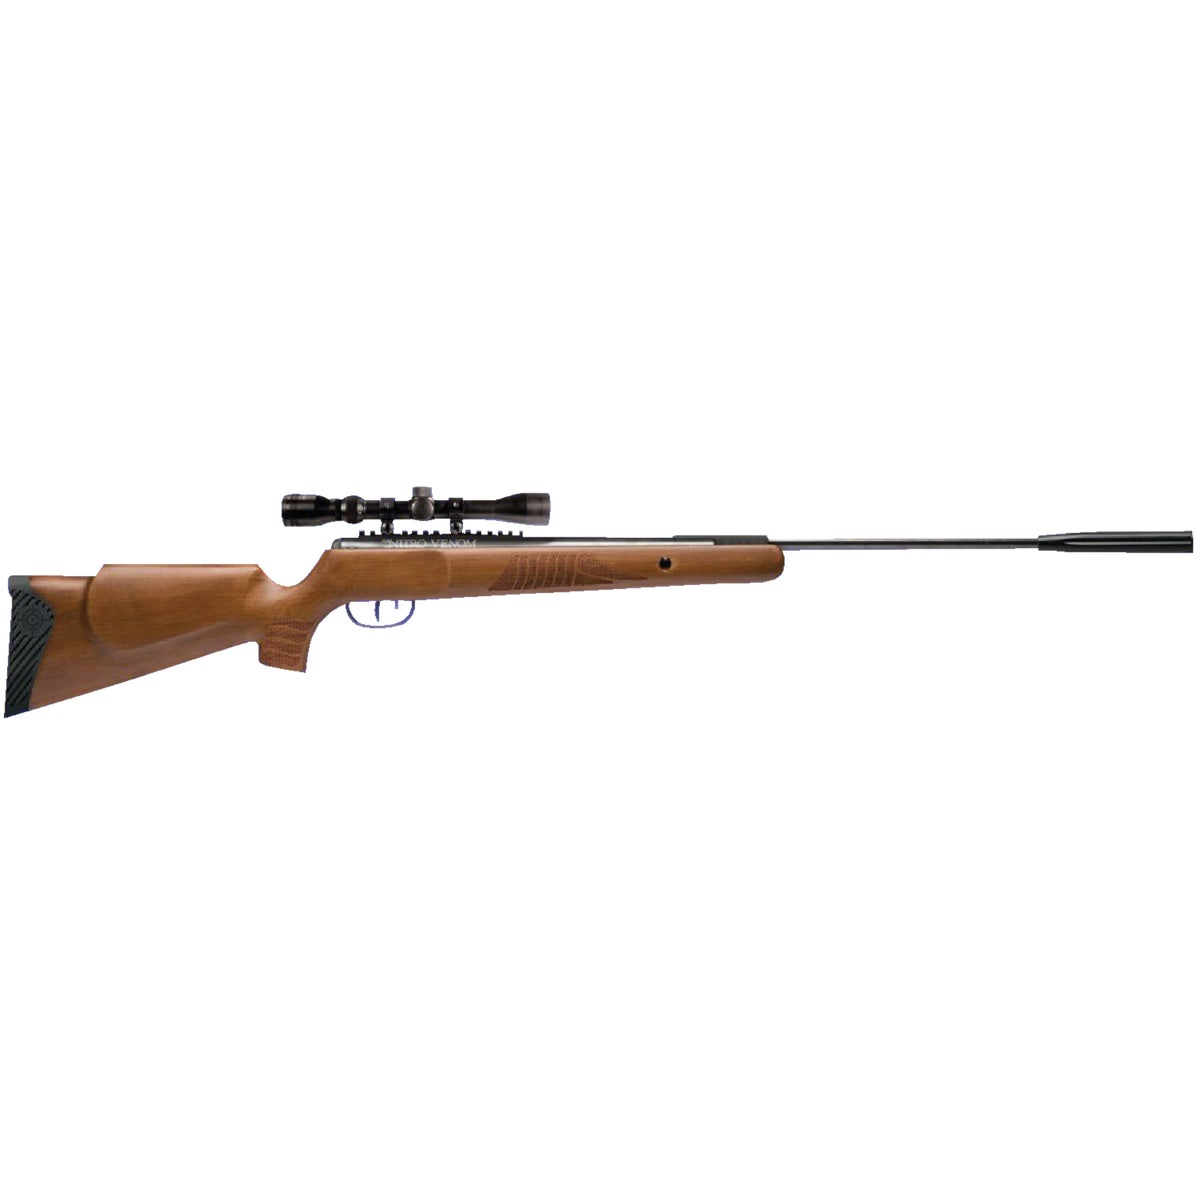 VENOM BRK BARREL RIFLE - CVW1K77NP by Crosman Corporation